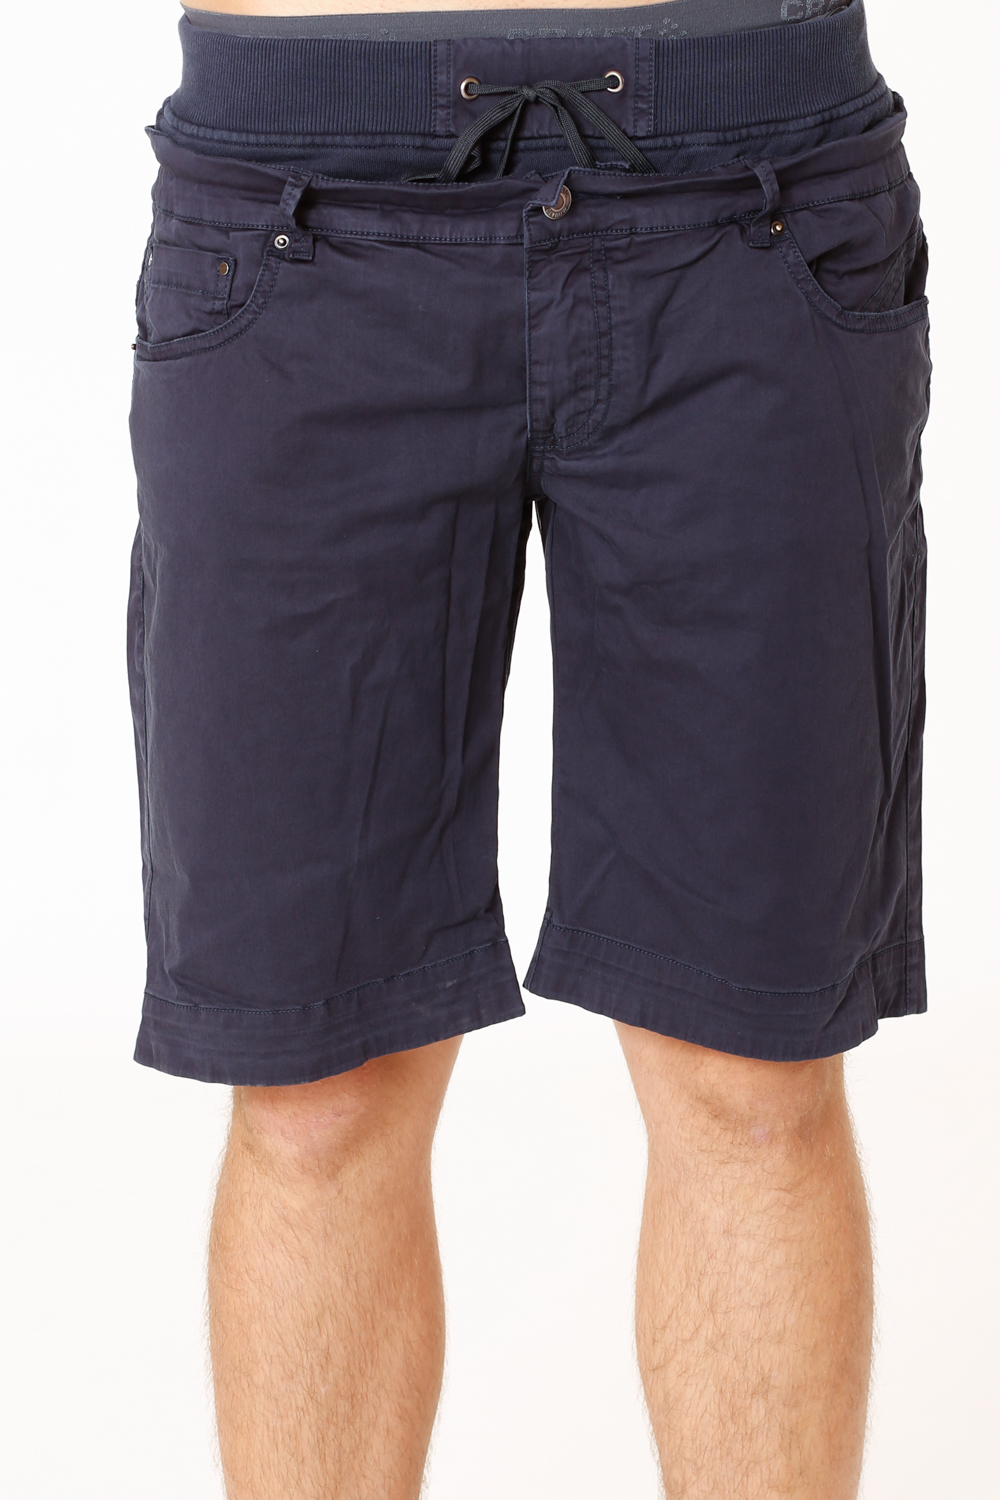 upload/product_display_image/201510/mb4264_am_shorts_navy_a.jpg